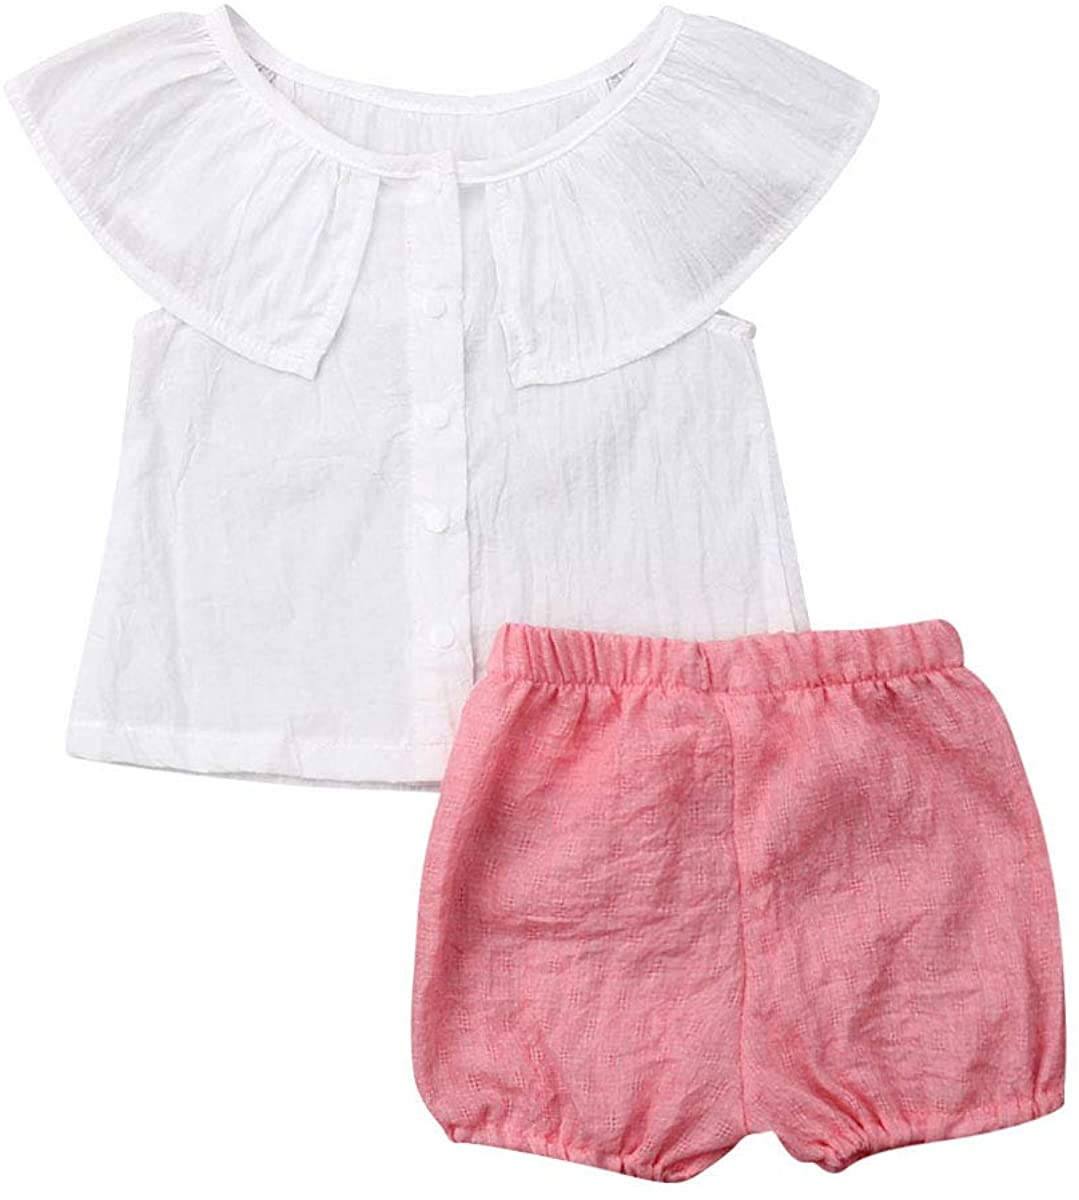 2PCS Baby Girls Cotton Linen Button Down Ruffled Shirts Tops + Solid Shorts Infant Baby Girls Outfits